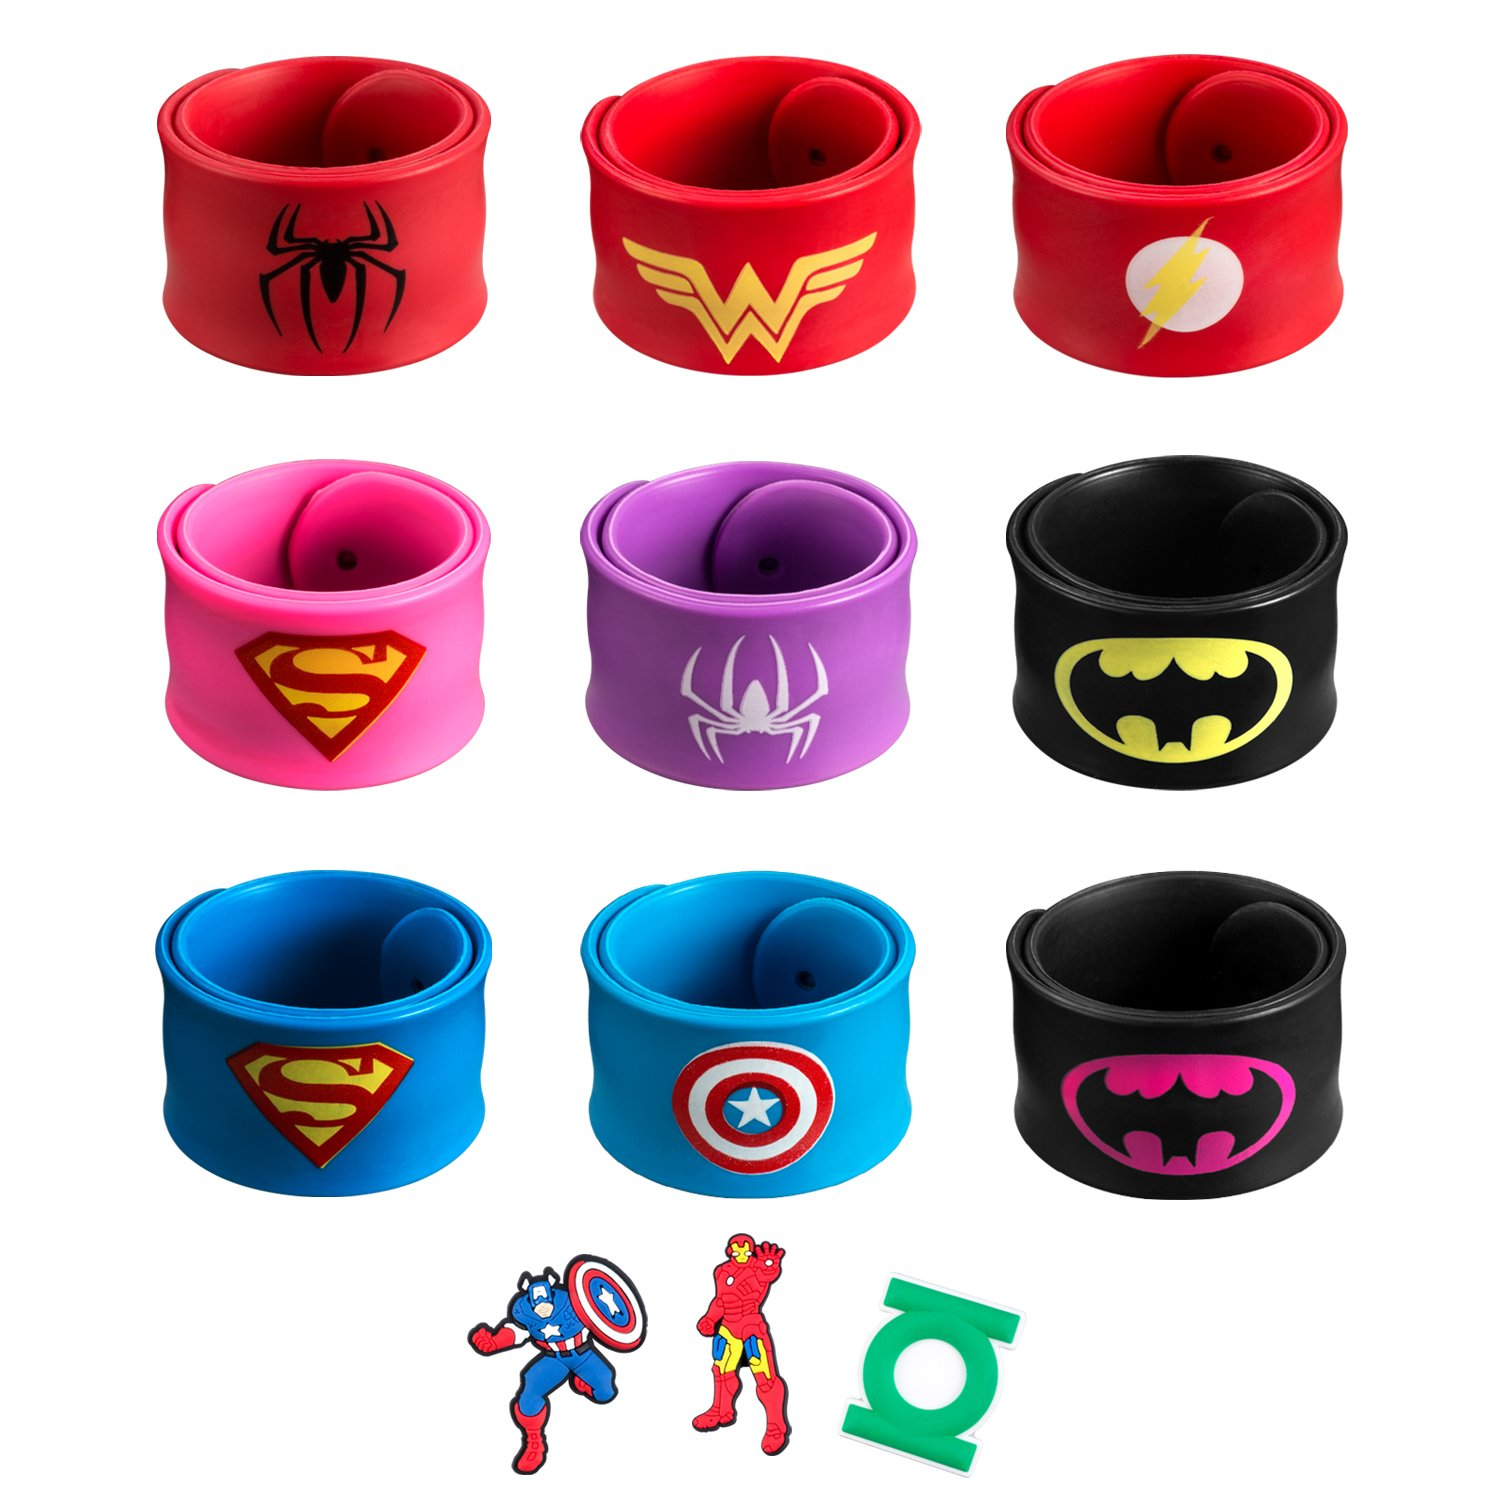 amasky Superhero Slap Bracelet, Slap Bracelet for Kids Boys & Girls Birthday Party Supplies Favors, Three Additional Superhero Brooch. (12 in pack)